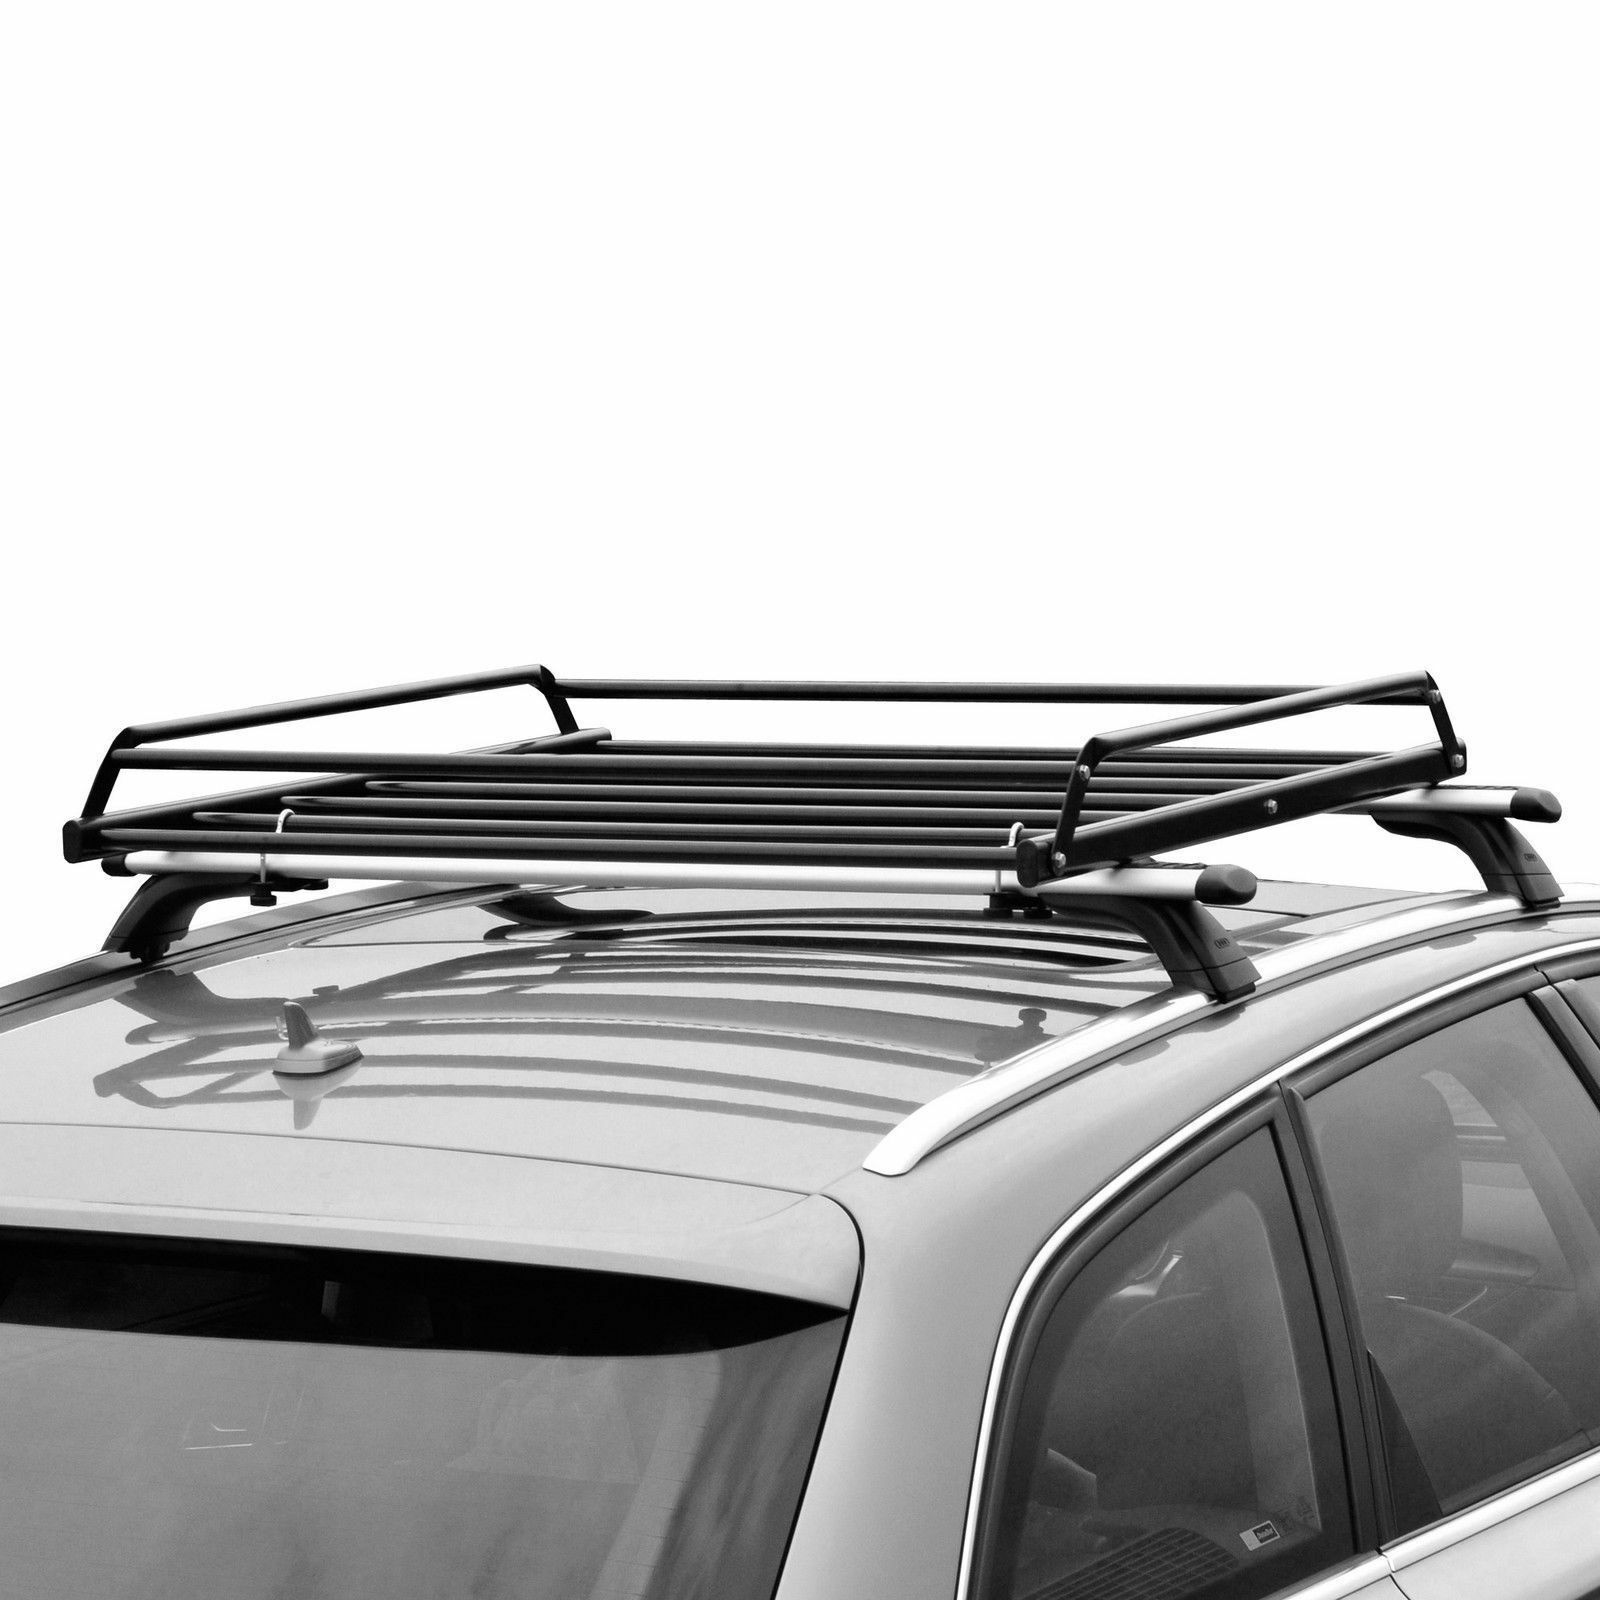 Car Roof Rack >> Basic Car Roof Tray Platform Rack Carry Box Luggage Carrier Basket